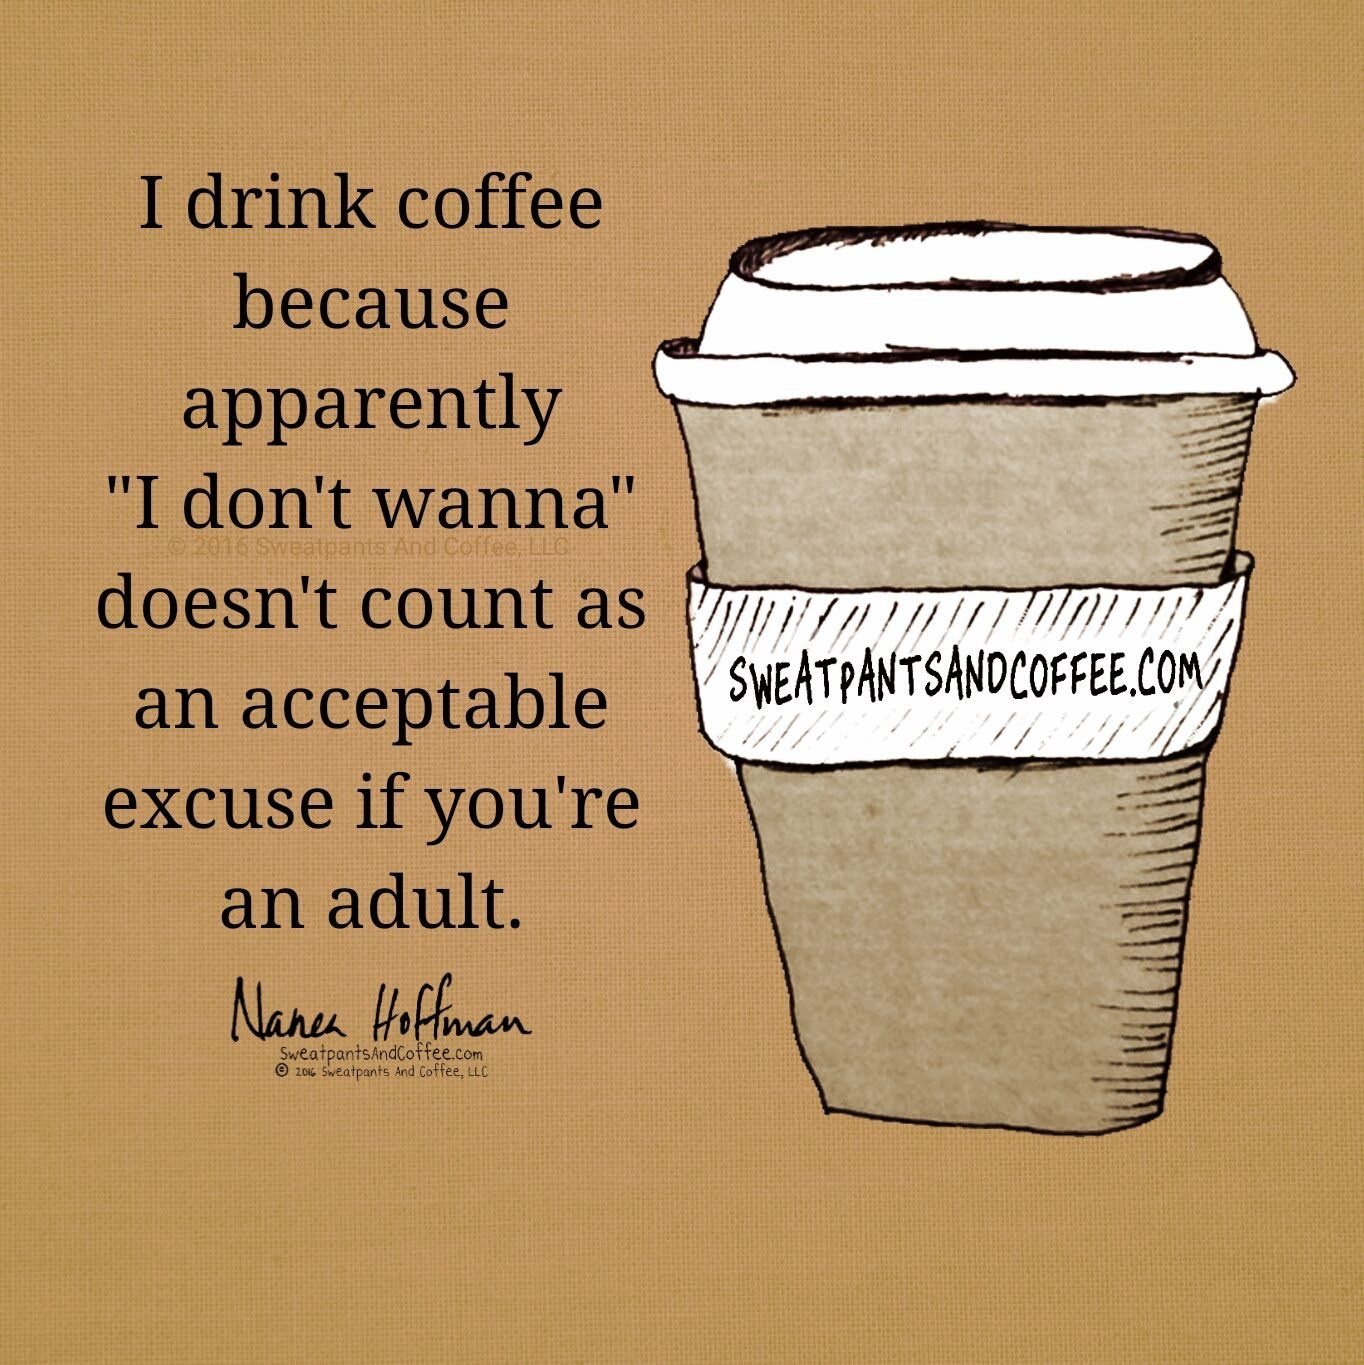 Pin by Laura Elliott on Coffee | I drink coffee, I love coffee ... #funnyCoffeeShop